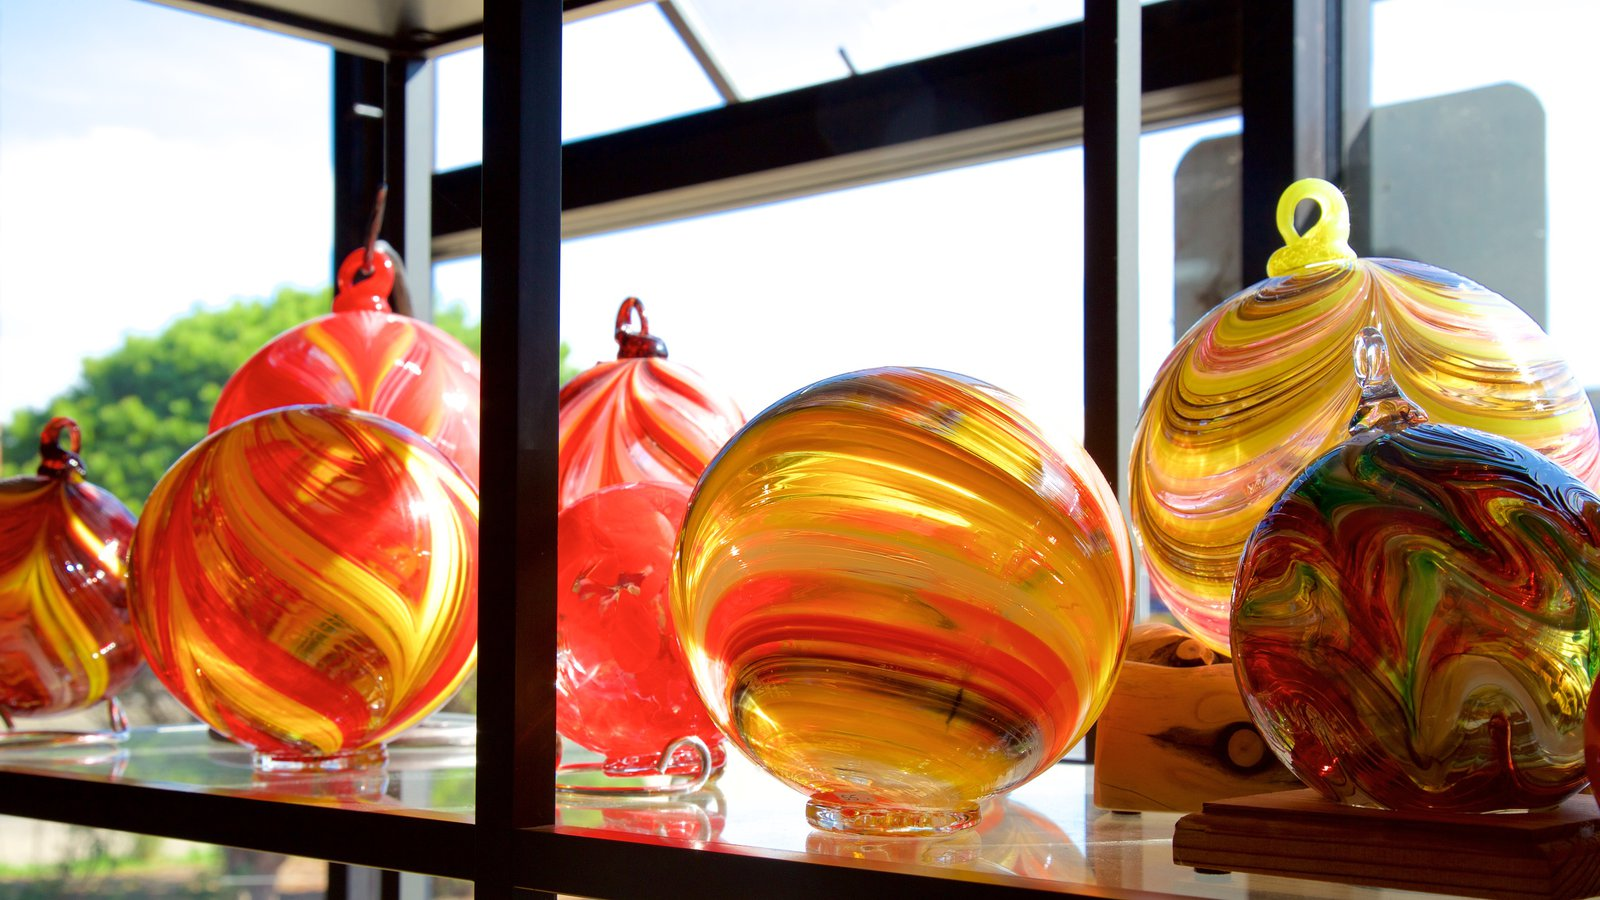 Estudio de arte Jennifer Sears Glass ofreciendo vistas interiores y arte